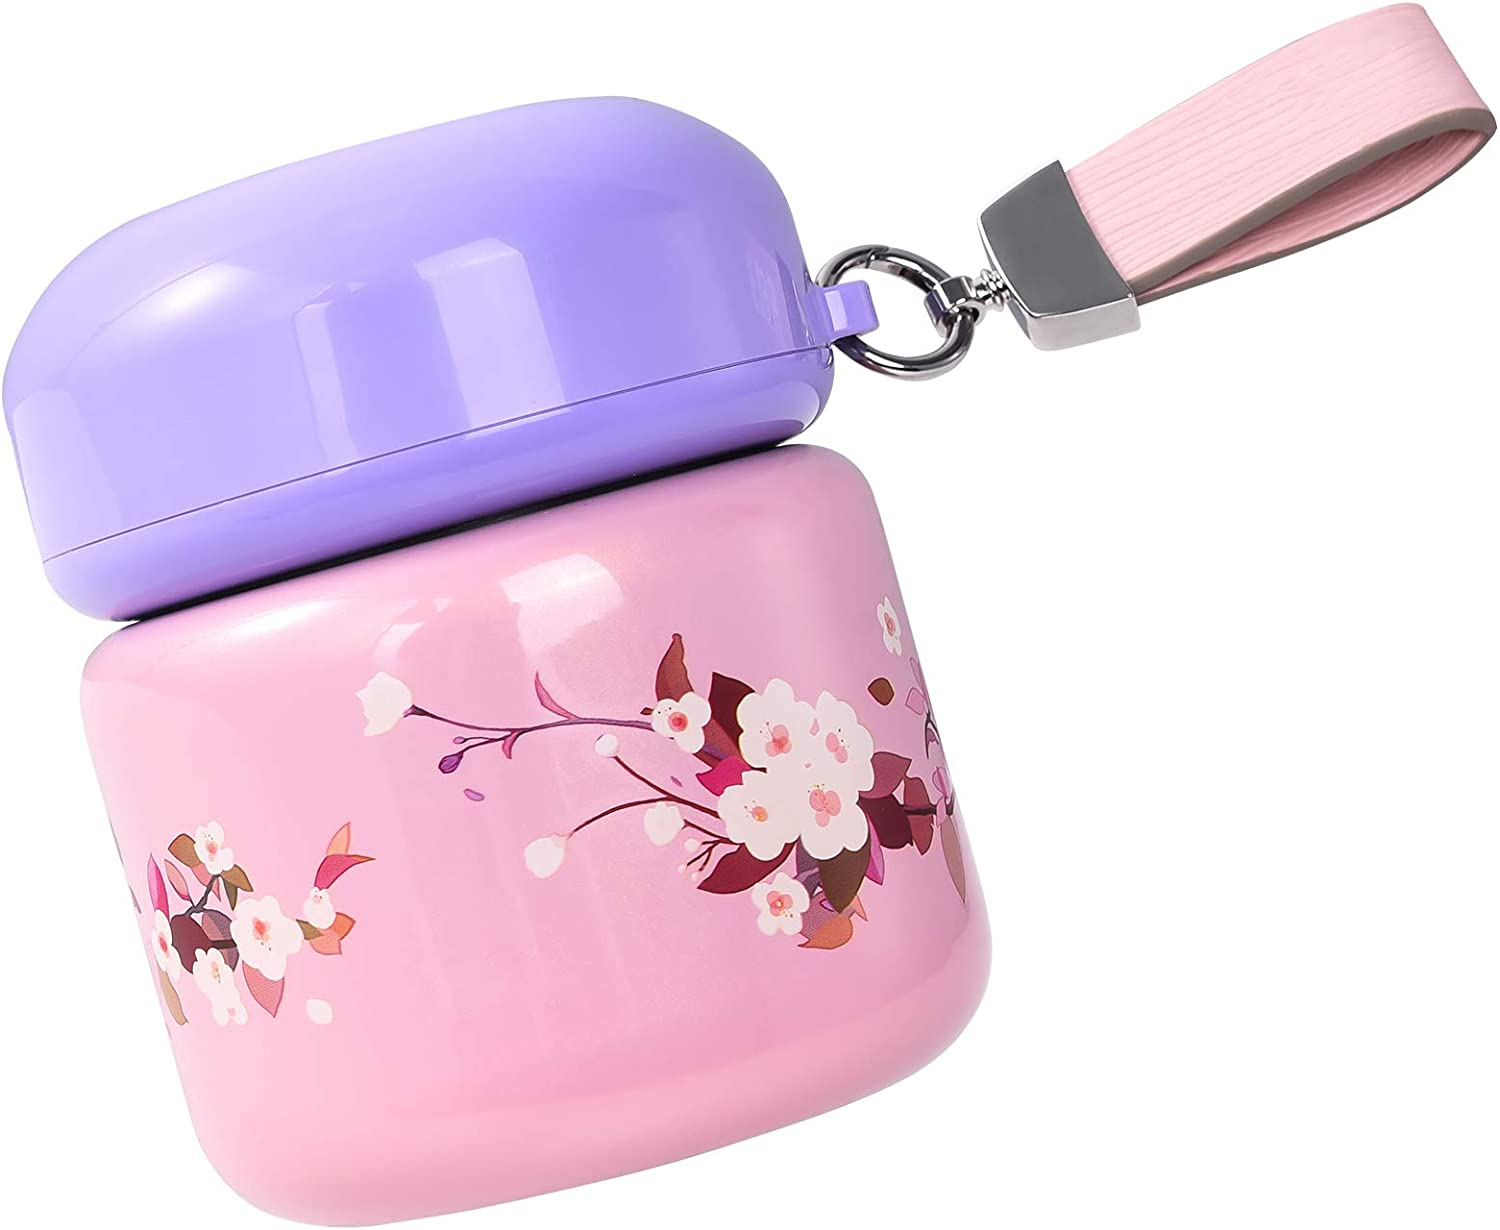 Insulated Lunch Container Hot Food Jar 18 oz Stainless Steel Vacuum Bento Lunch Box for Kids Adult with Spoon Leak Proof Hot Cold Food for School Office Picnic Travel Outdoors - pink